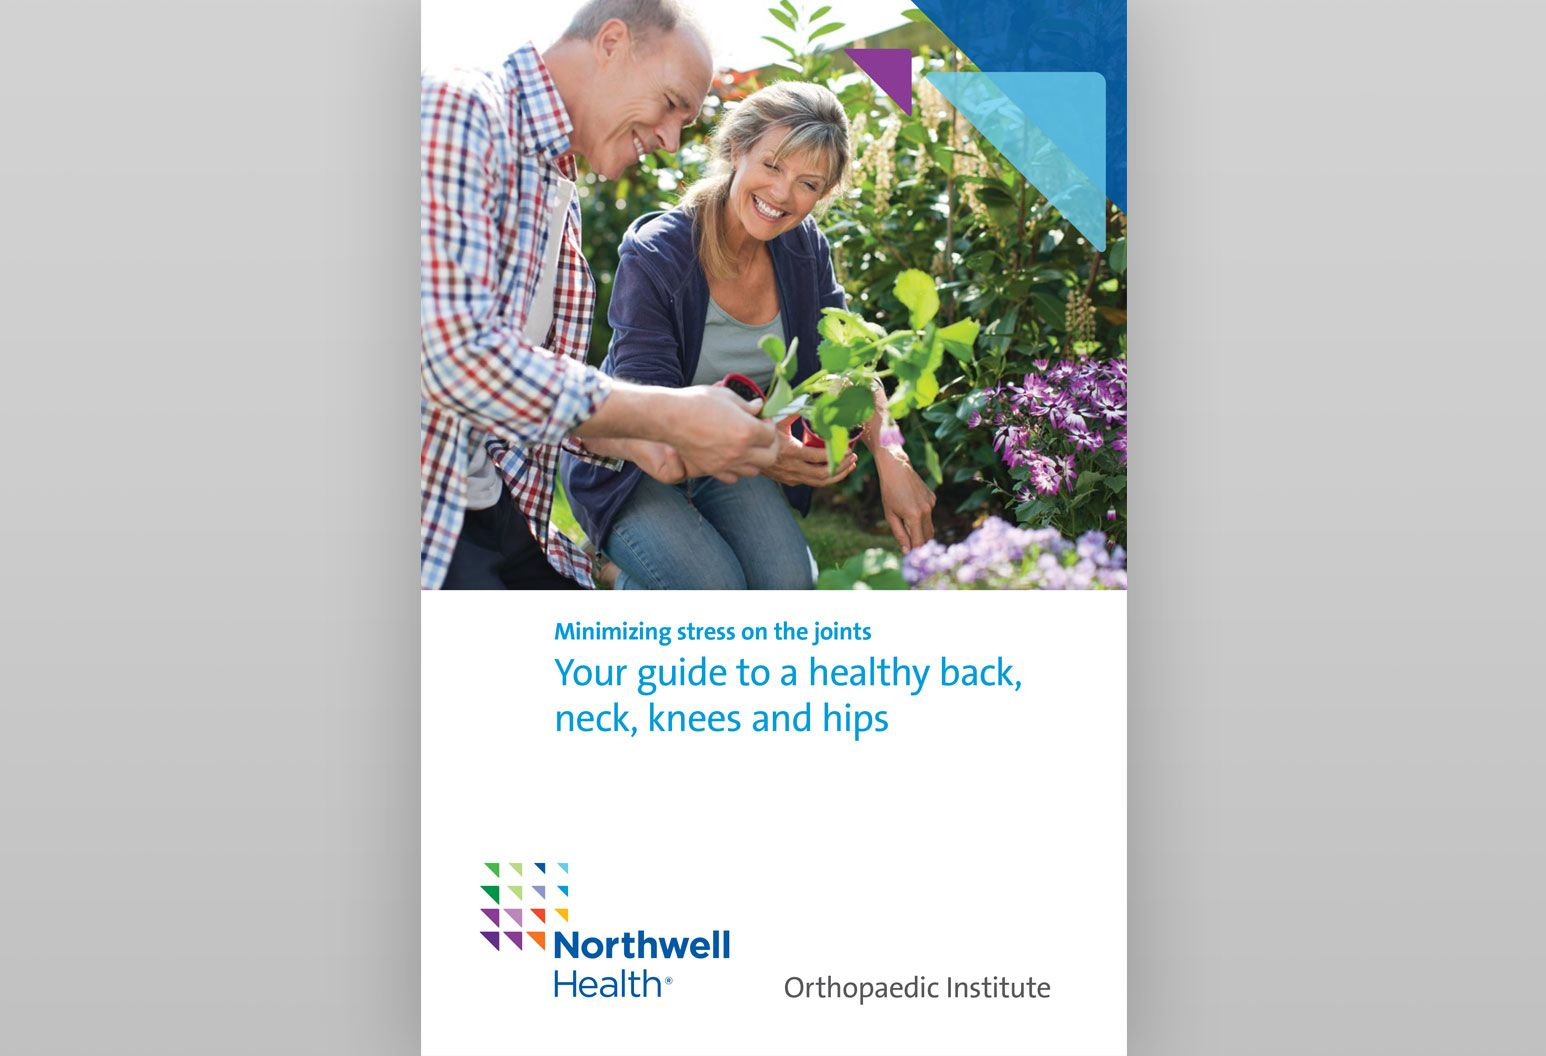 The cover of an ebook called Your guide to healthy back, neck, knees and hips is displayed with a photo of a middle aged couple gardening. There are four other ebooks displayed behind that.